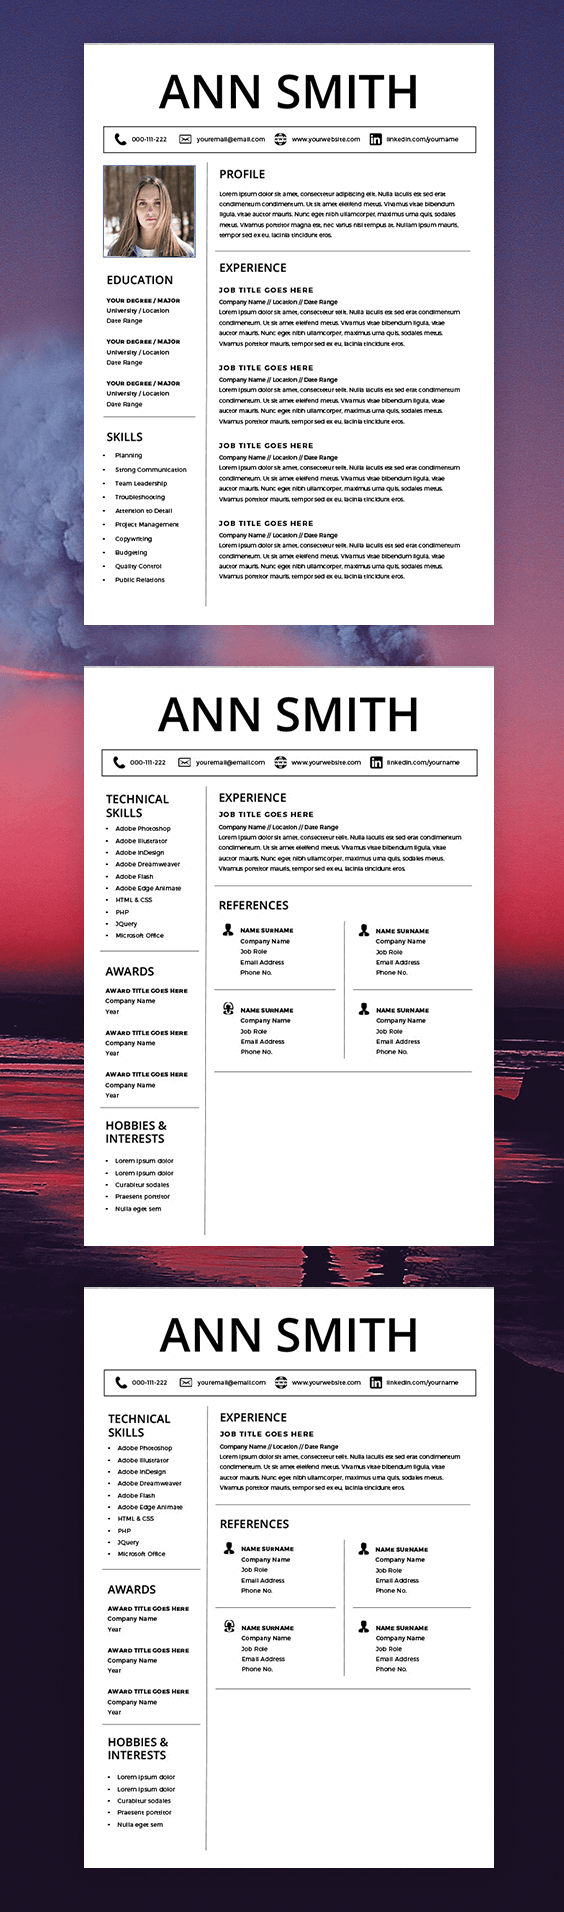 curriculum vitae template- cv template - cover letter